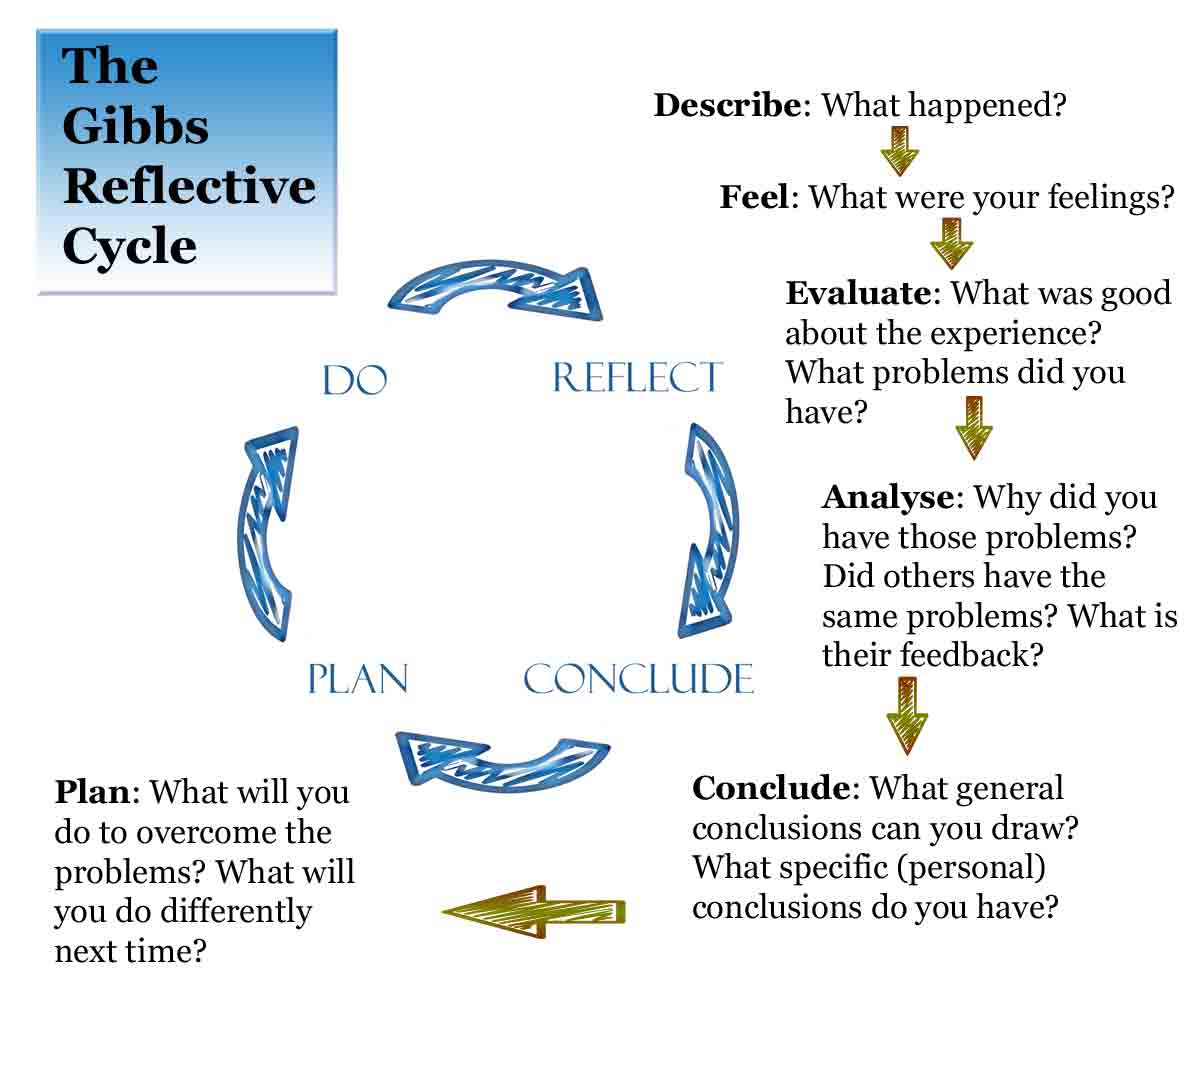 Gibbs cycle